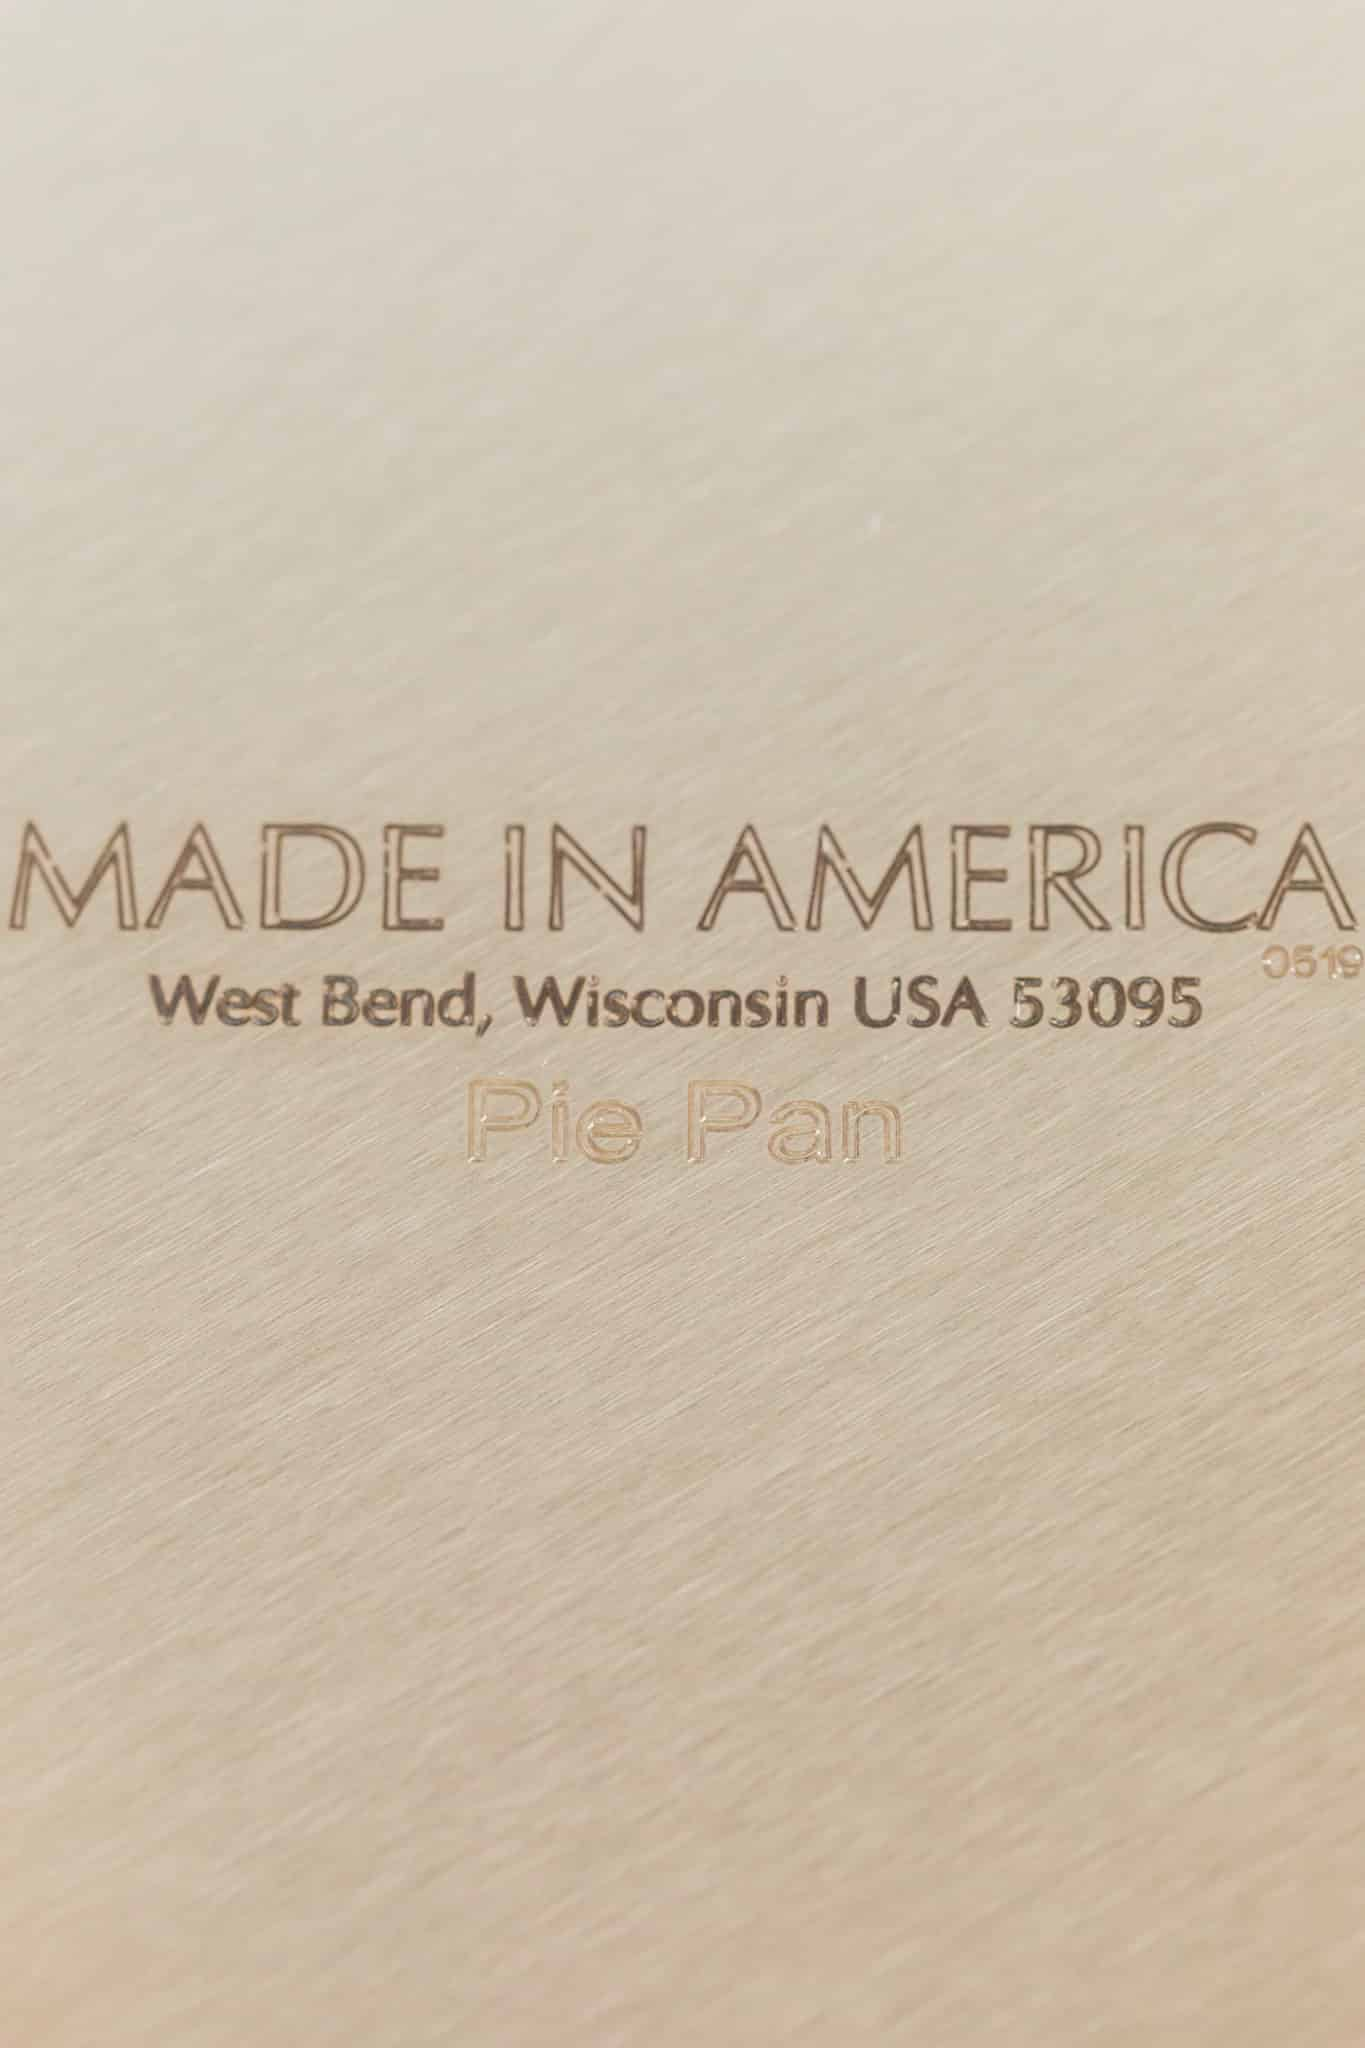 underside of a pan inscribed with the made in america label